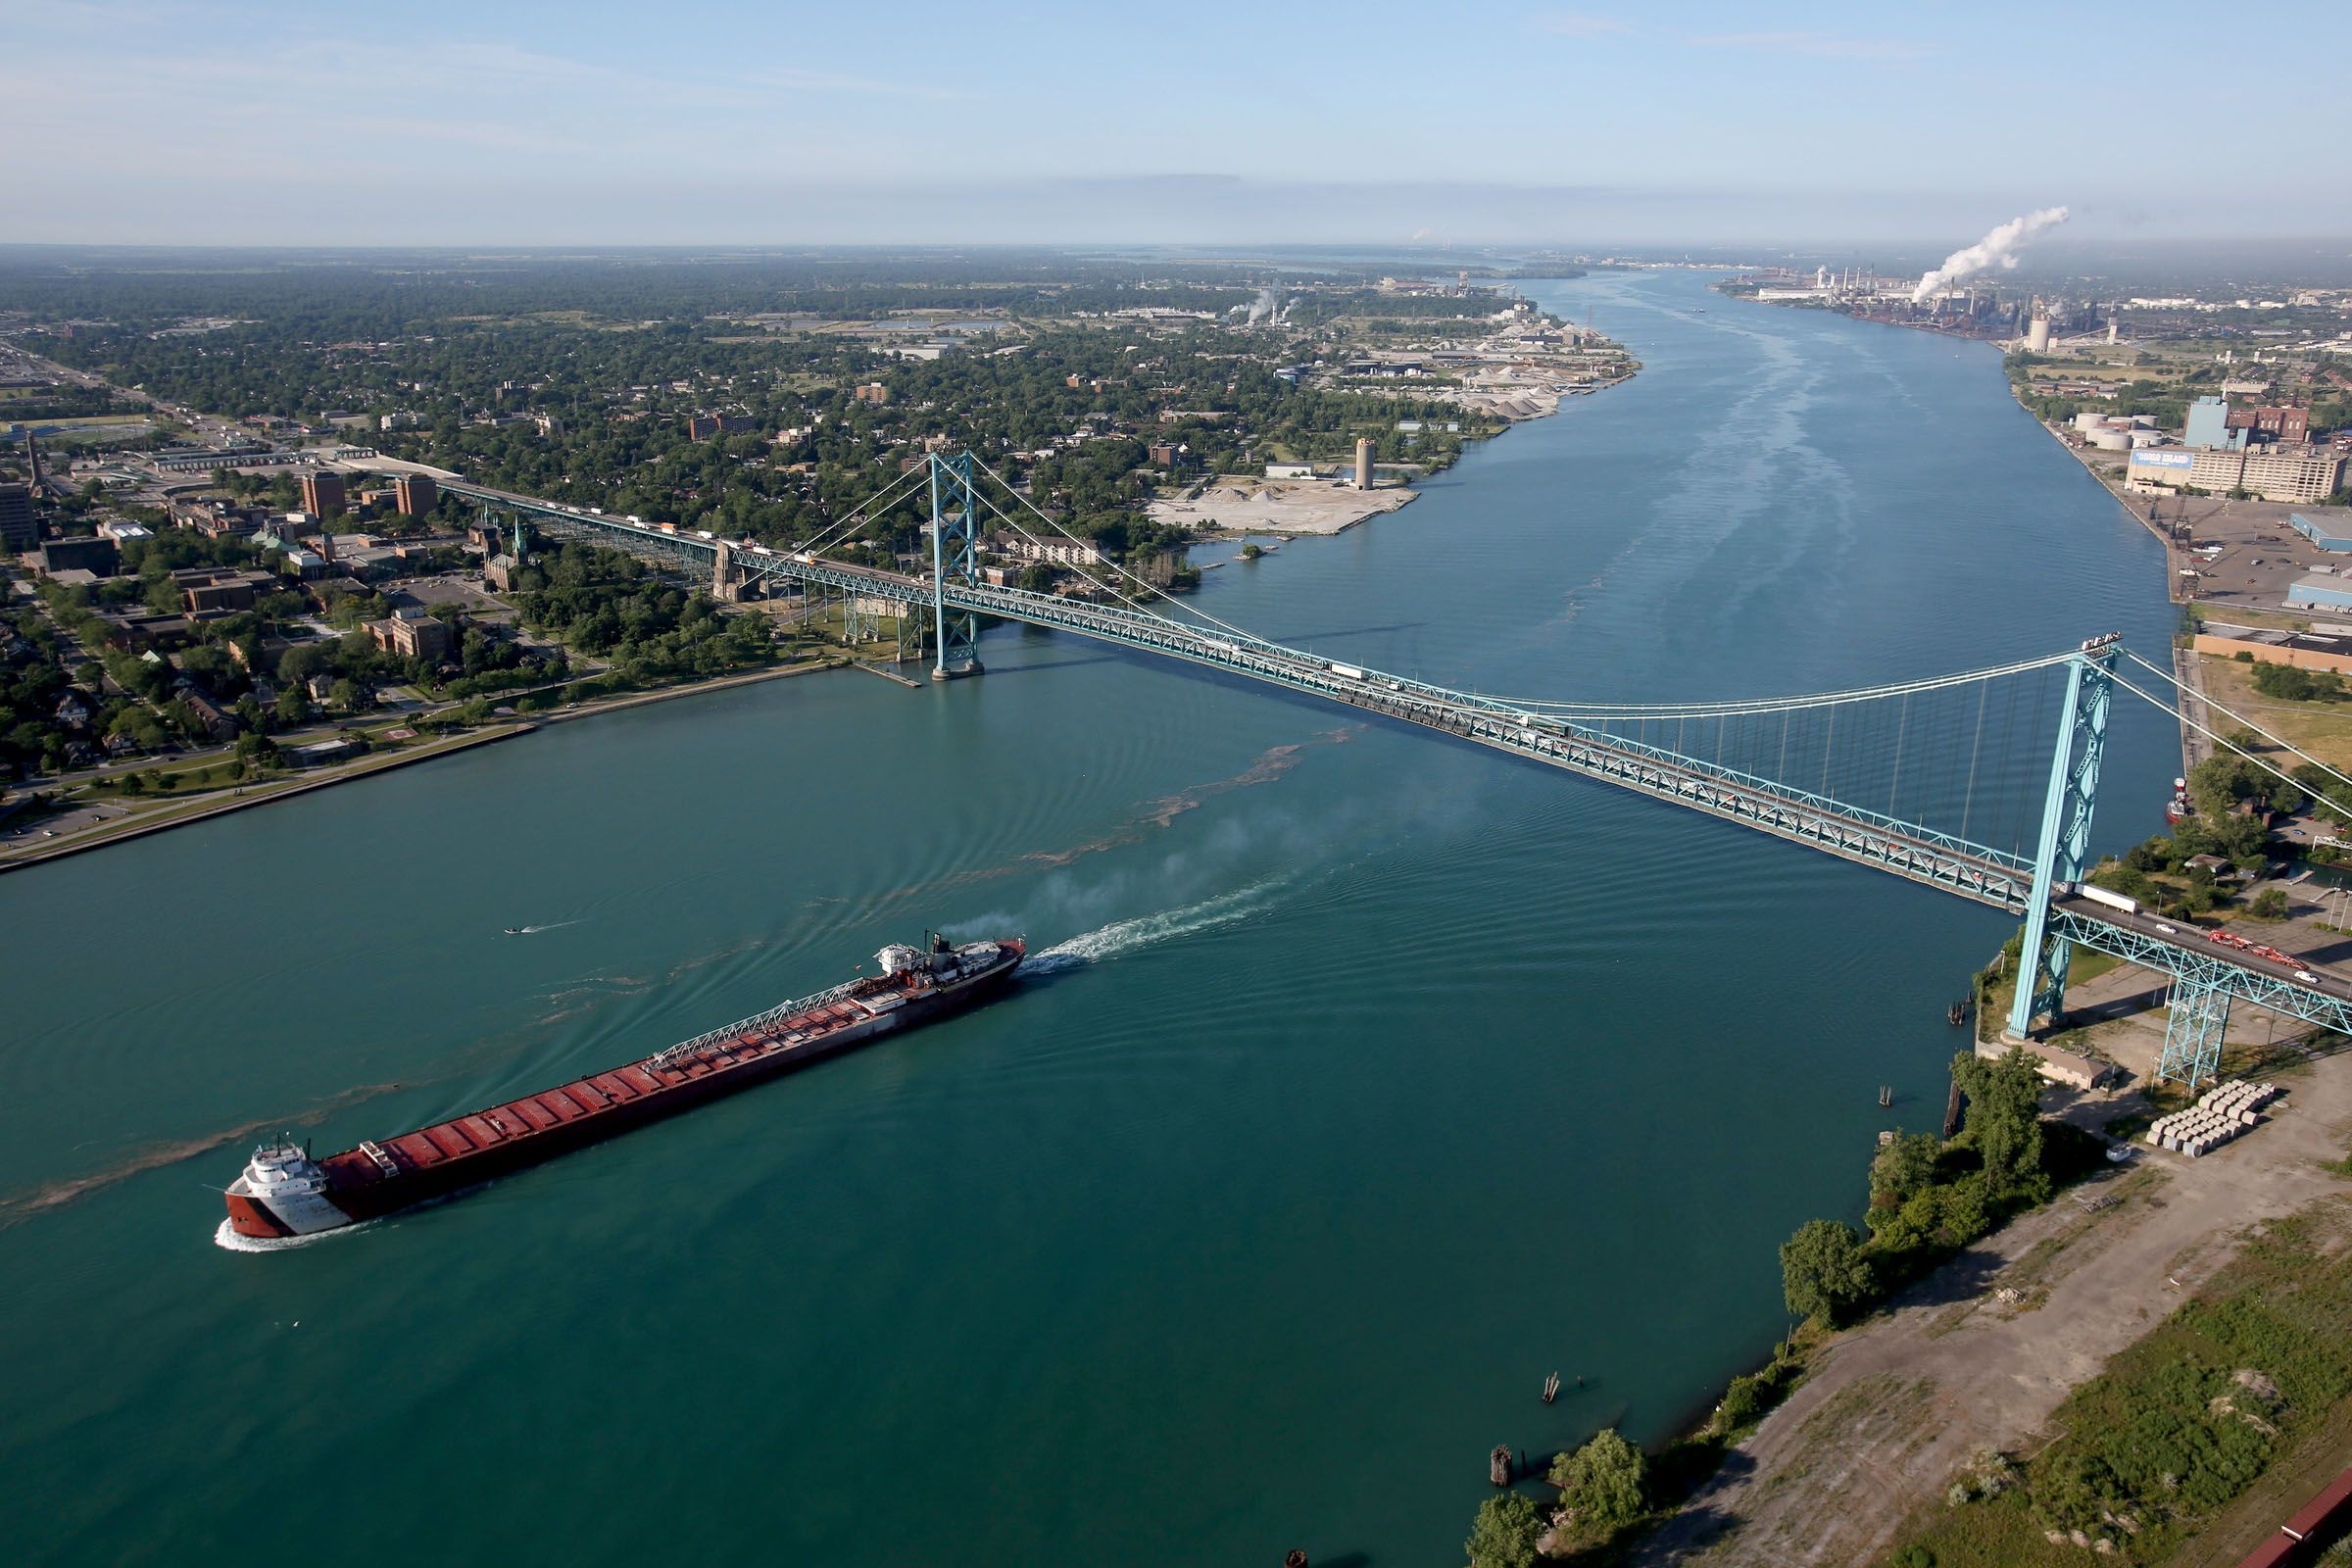 Windsor musician climbed to top of Ambassador Bridge and nobody noticed